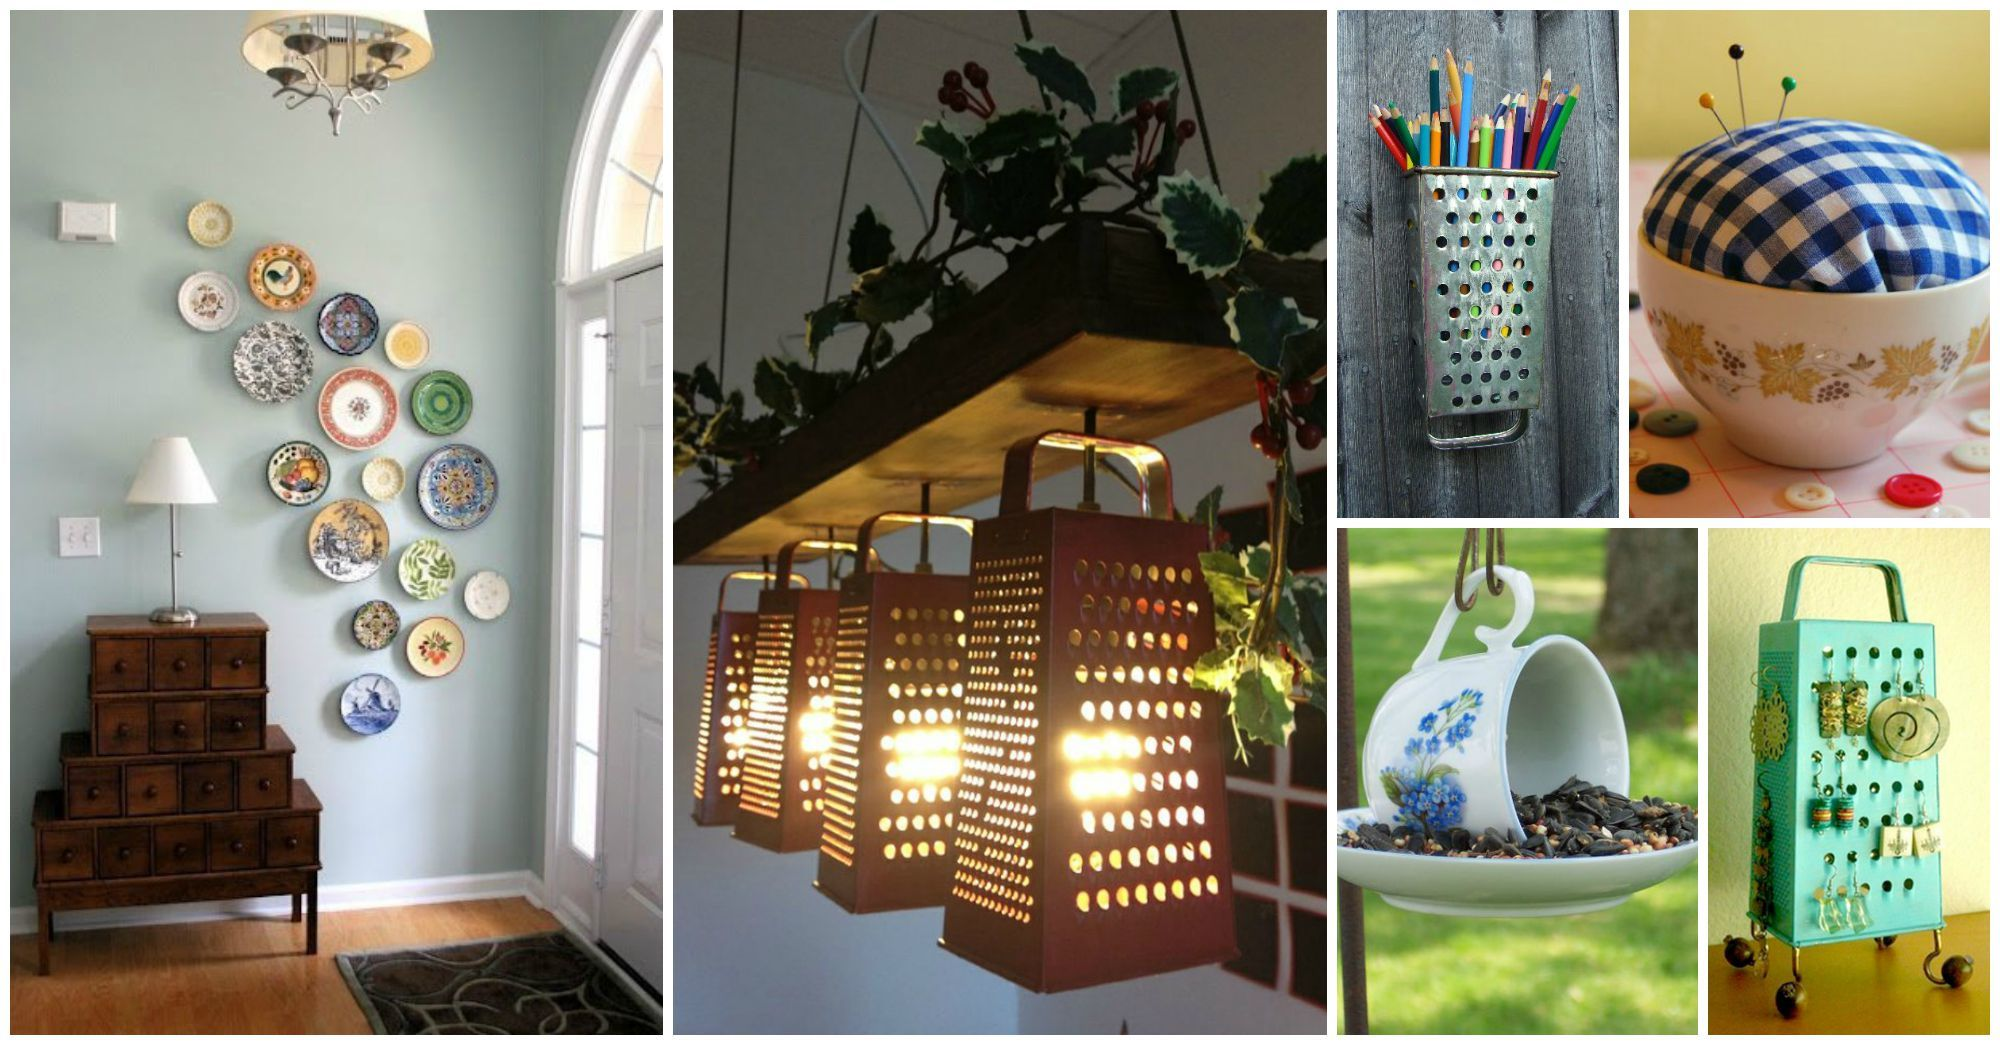 15 Ways To Repurpose Your Old Kitchen Utensils And Tools